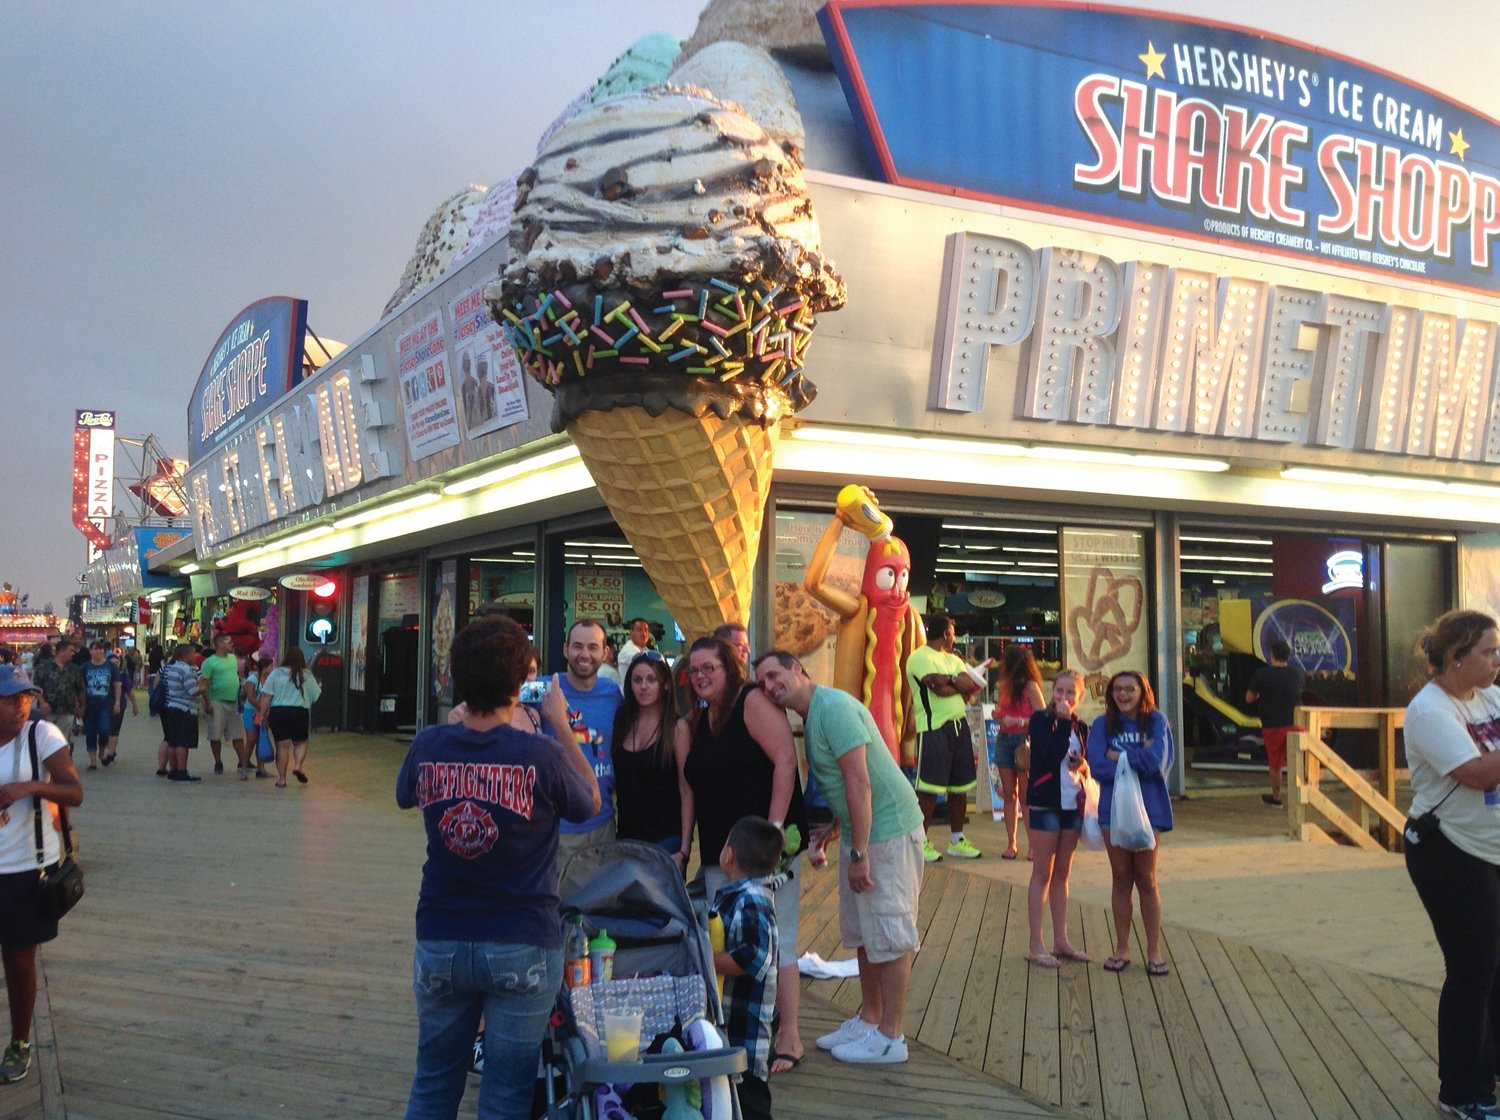 The Shake Shoppe Arcade <br/> A Summer Success Story that is Just the Start